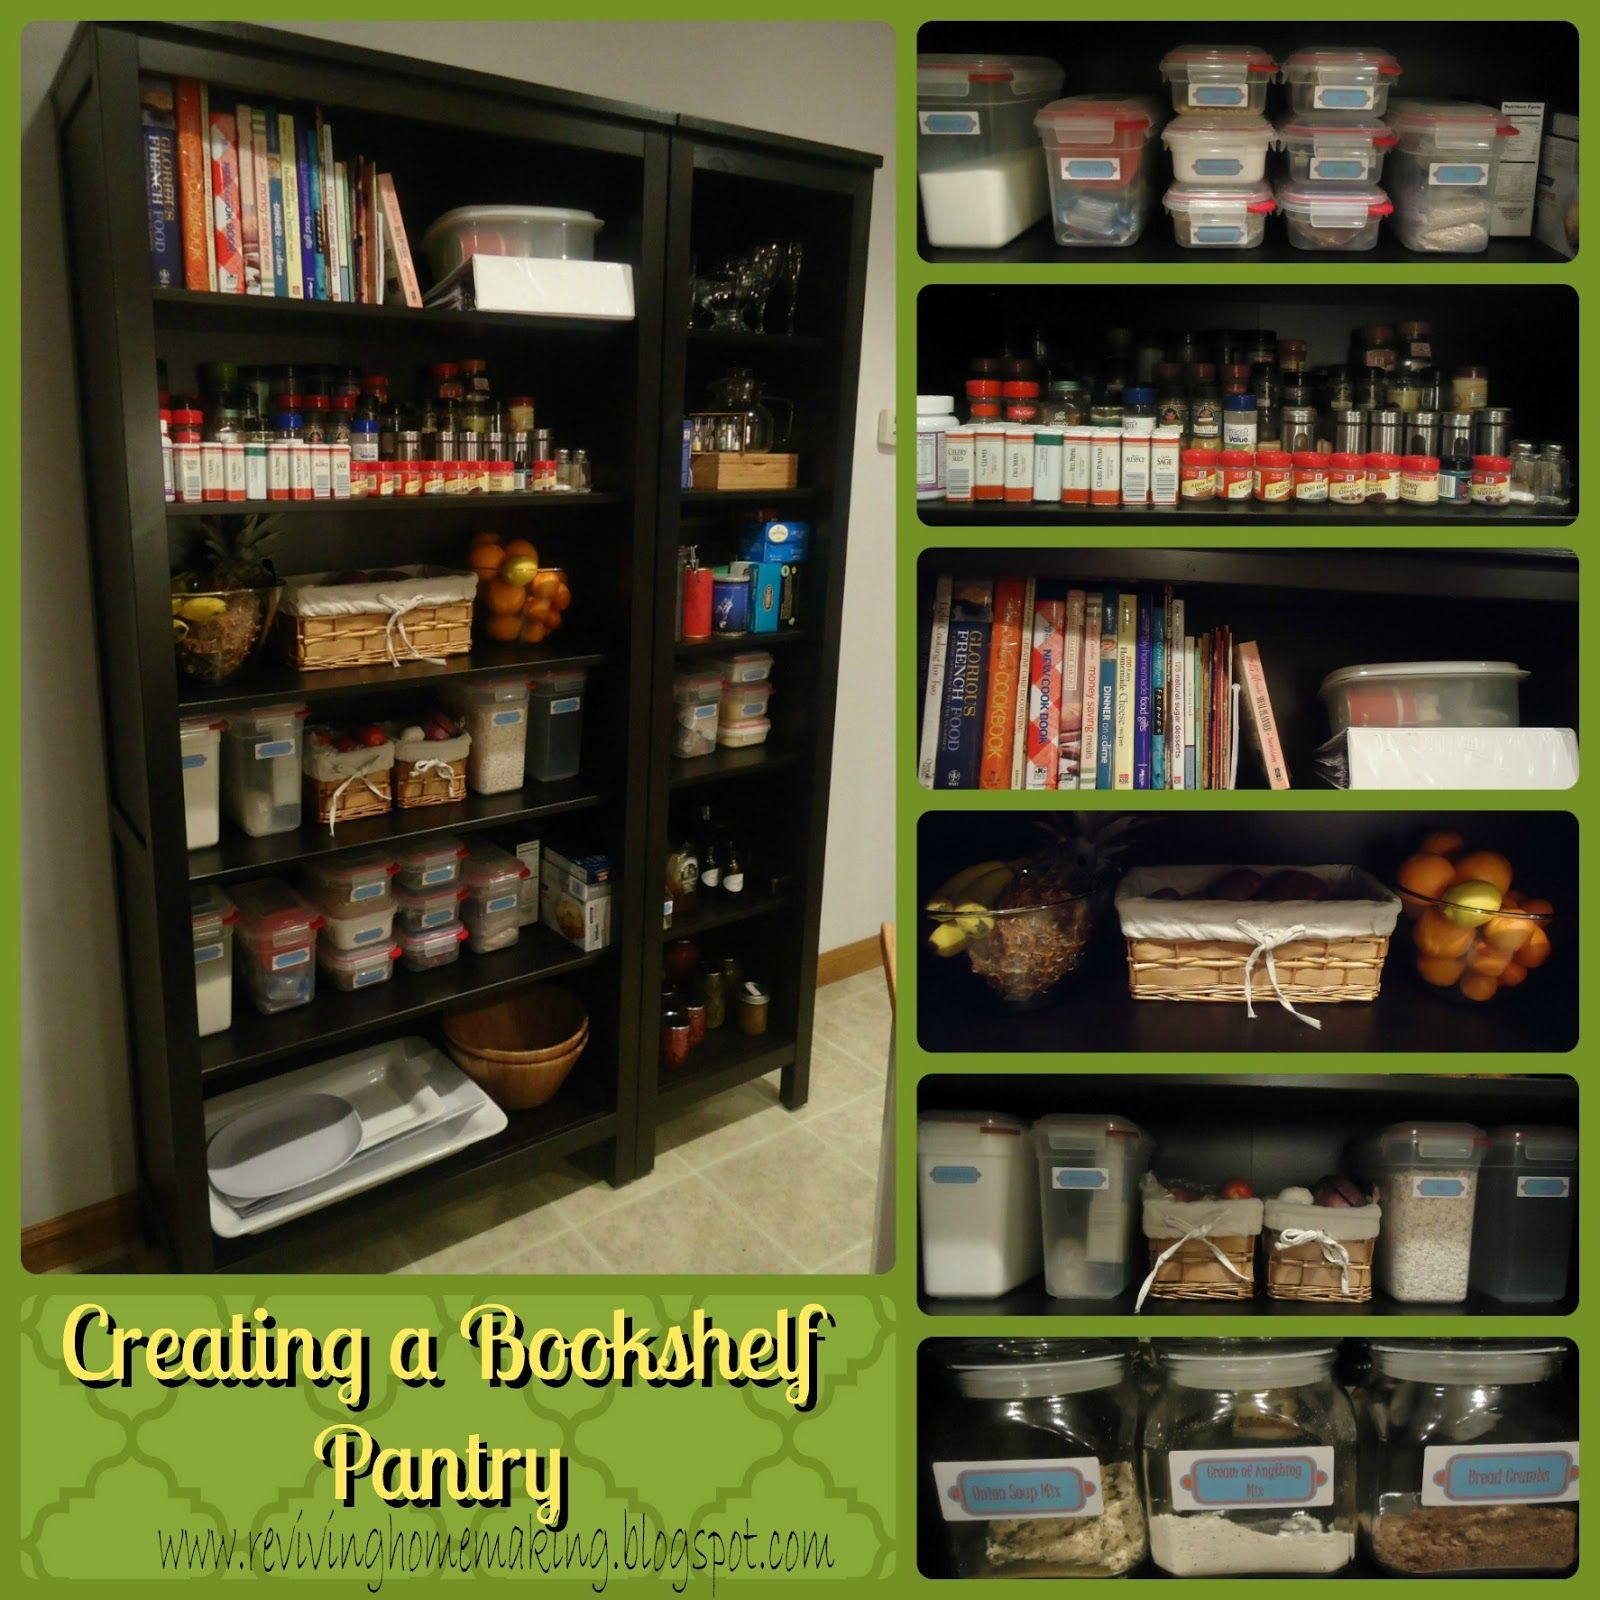 What a great idea if you don't have a pantry but have the room for a bookshelf! Reviving Homemaking: Creating a Bookshelf Pantry